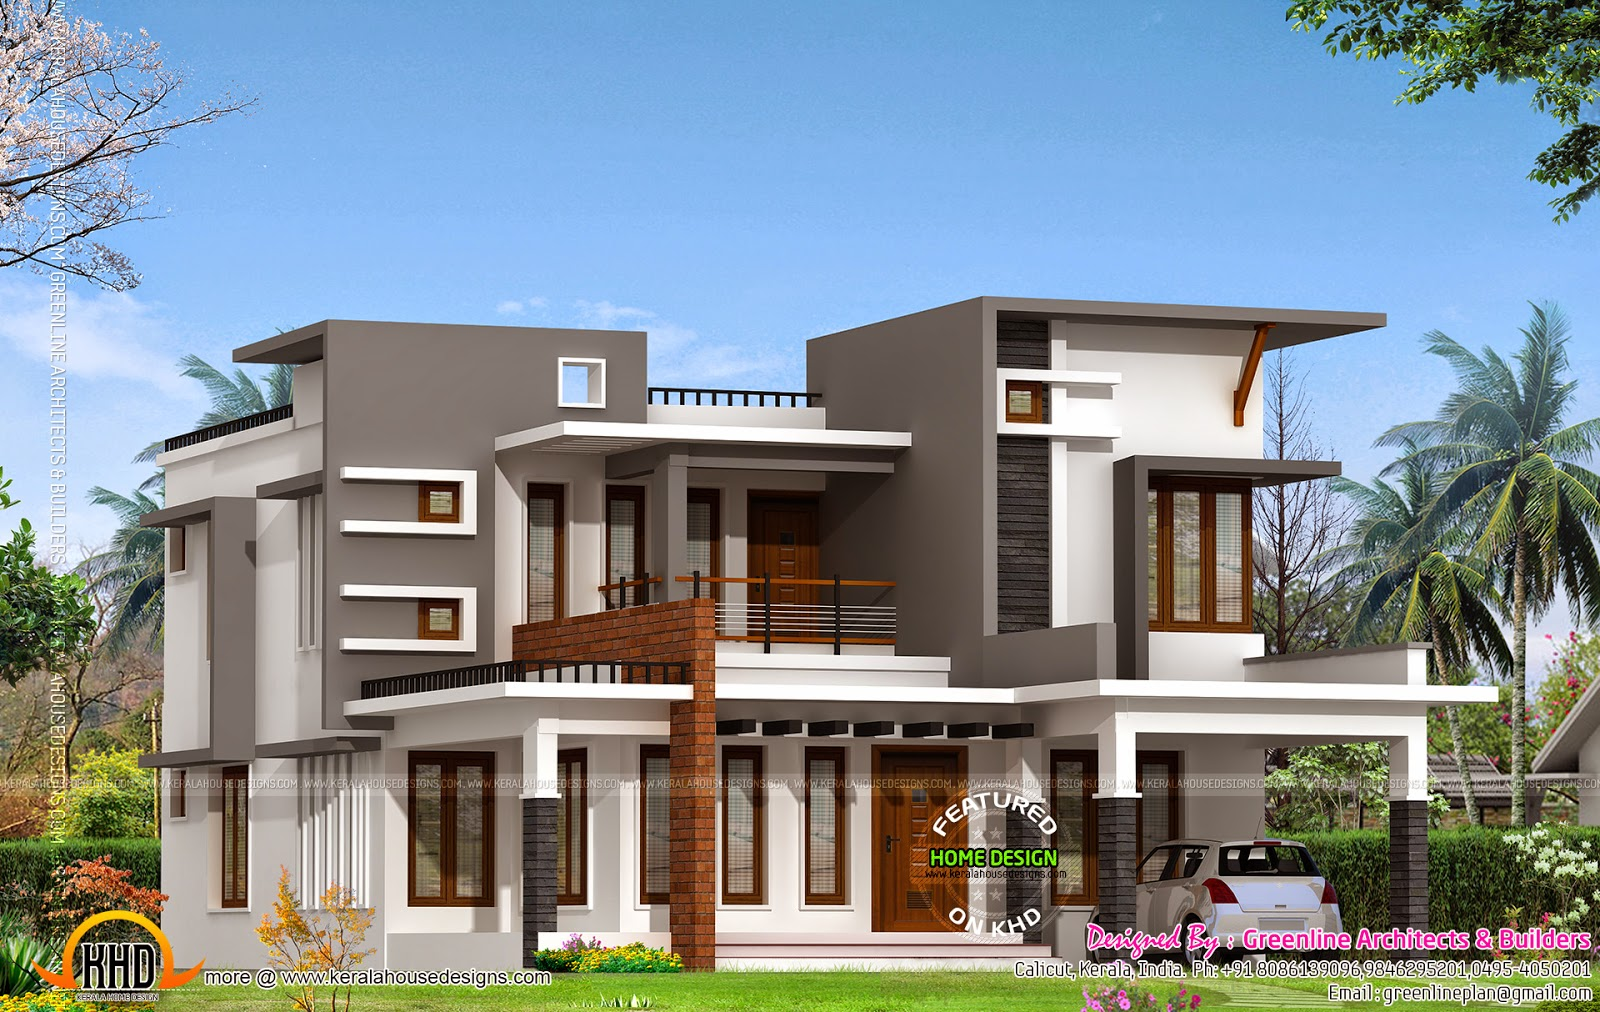 Contemporary house with estimate cost 28 lakhs kerala for Modern kerala style house plans with photos